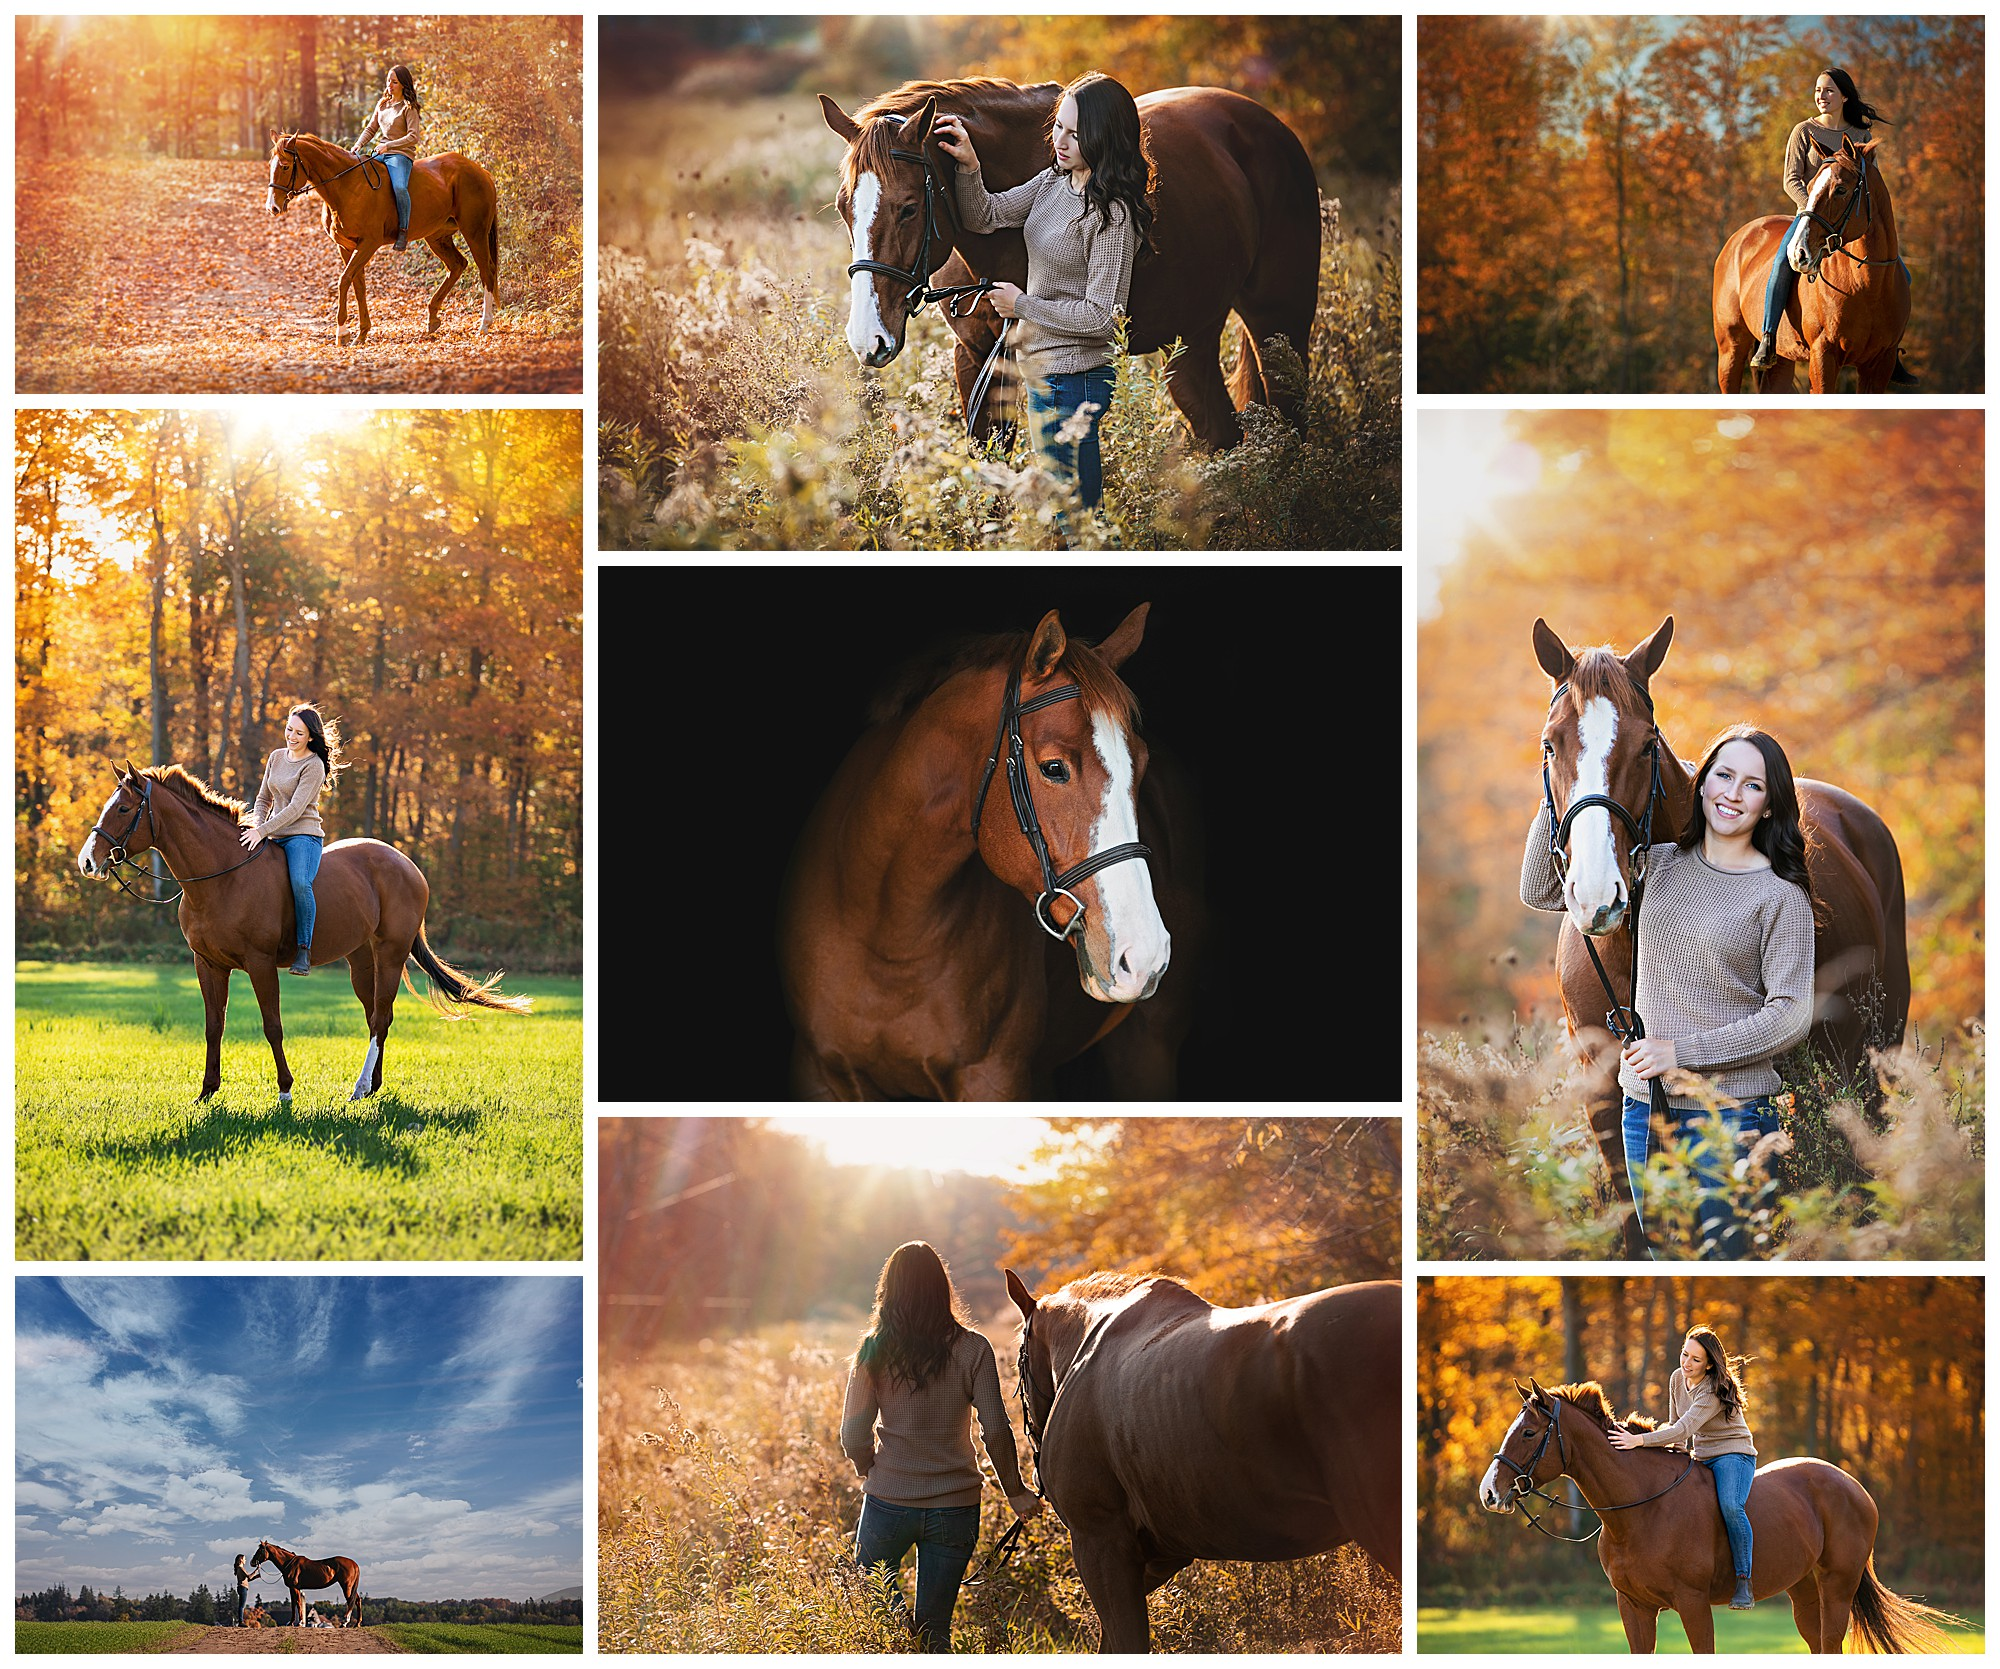 Baden, Ontario equestrian photography by VanDaele & Russell